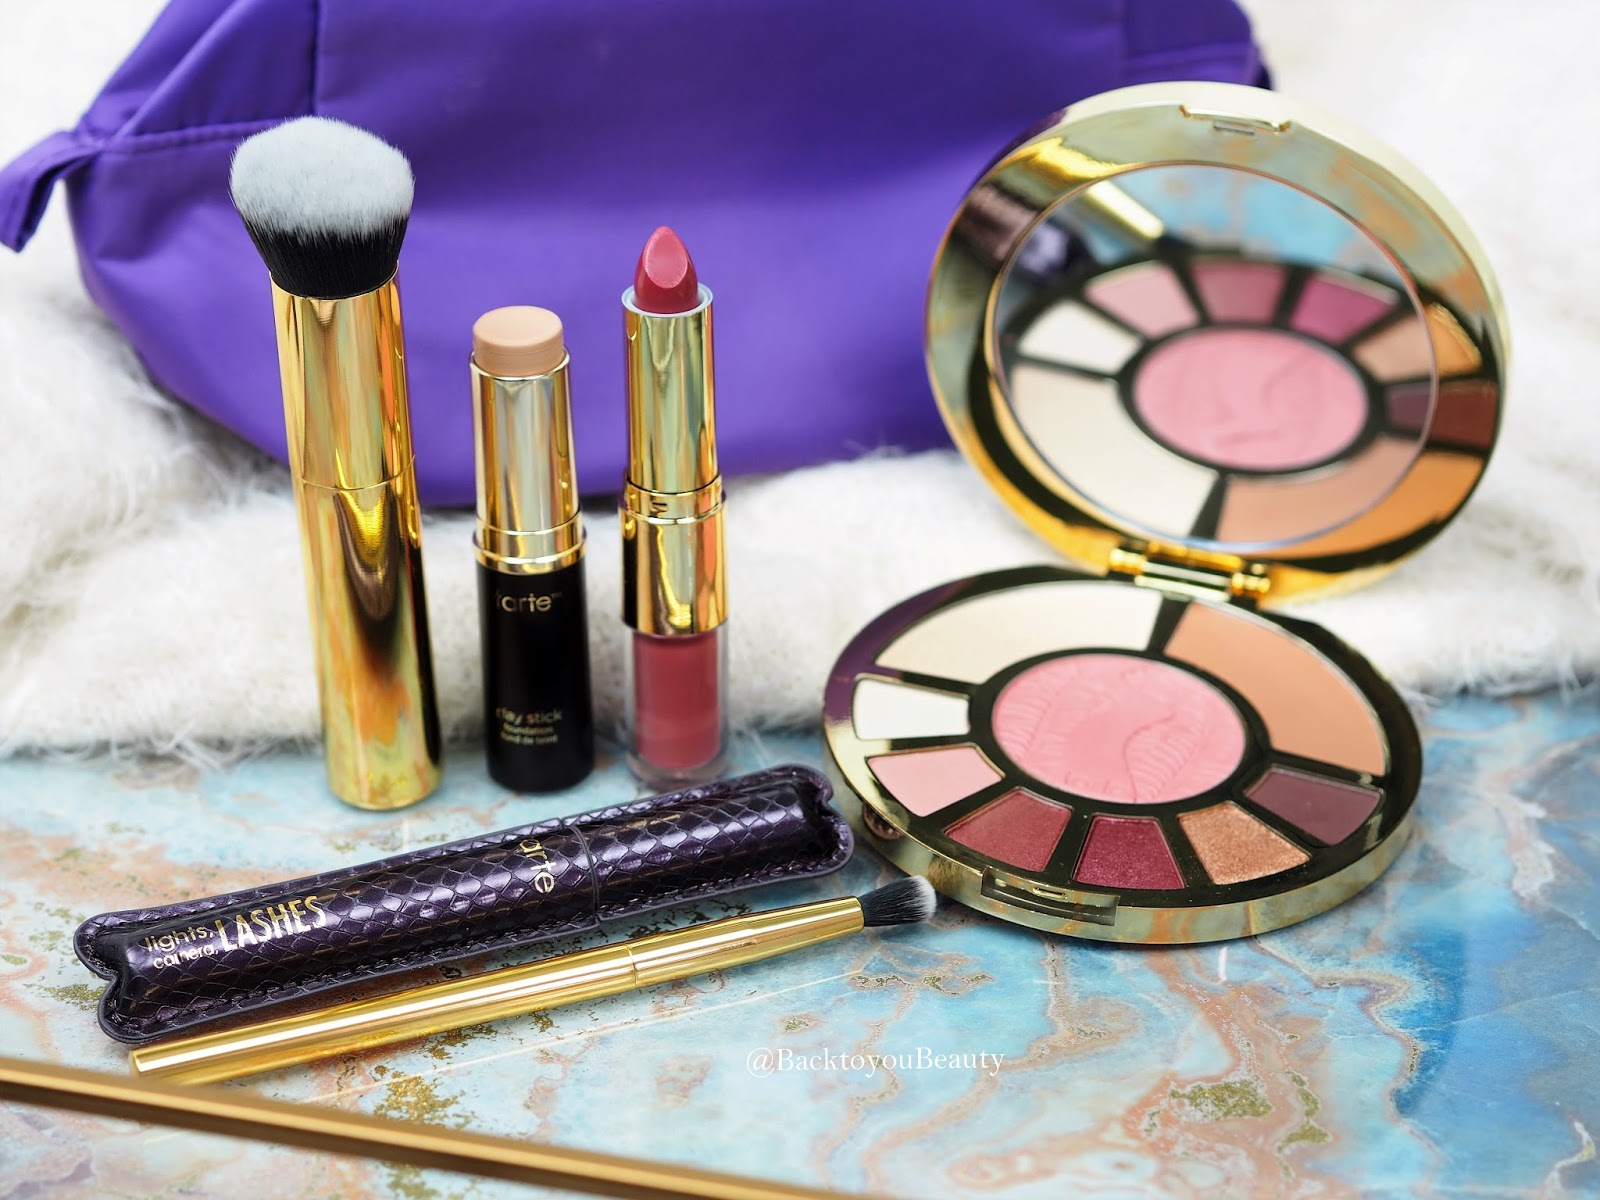 Tarte Good For You Glamour Tsv